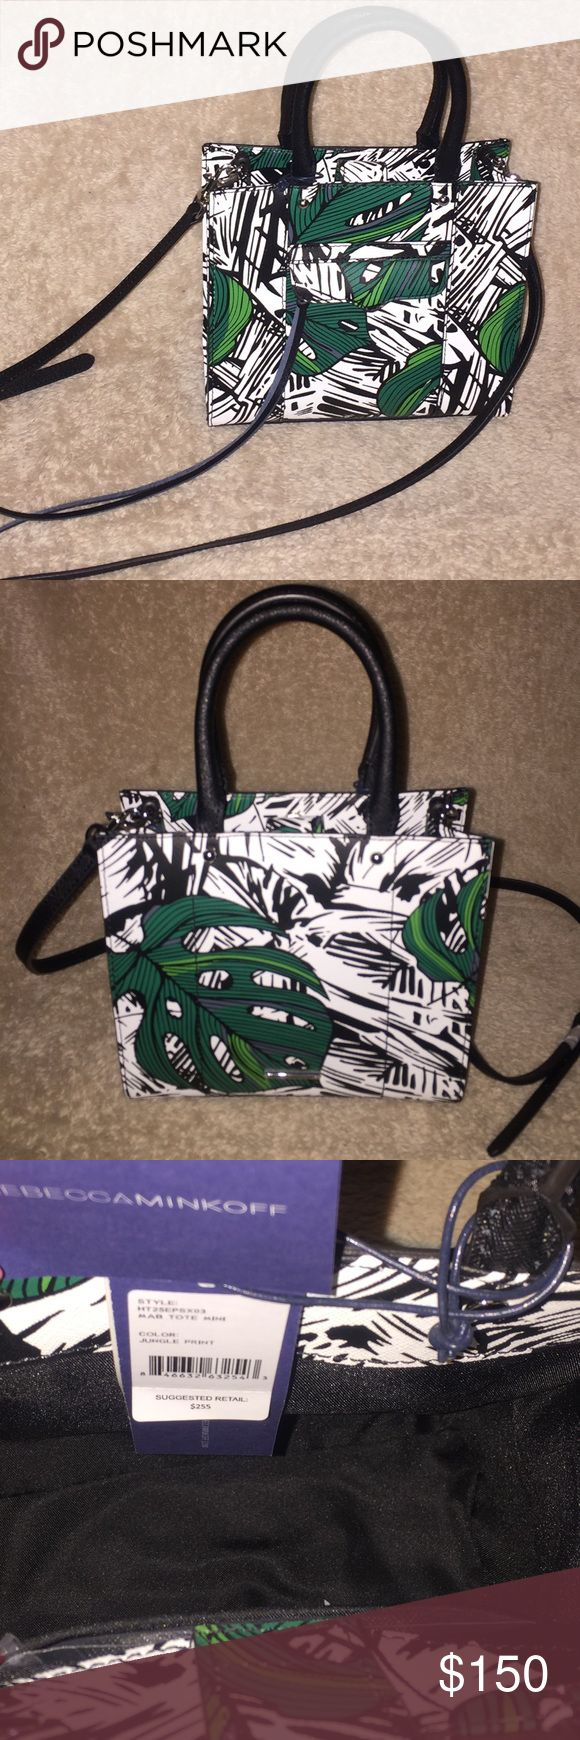 Rebecca Minkoff MAB Mini Tote Bag - Jungle Print CONDITION: New, never worn & shows no visible signs of wear. DESCRIPTION: Authentic Rebecca Minkoff MAB Mini Tote Bag - Jungle Print  DETAILS: Scaled-down version of The signature MAB tote, detailed with a tropical print. A tassel pull closes the zip front pocket, and a magnetic snap secures the top. Lined, one-pocket interior. Rolled handles and detachable shoulder strap.  ADDITIONAL INFO: Duster IS included, adjustable Strap Drop: 55cm…